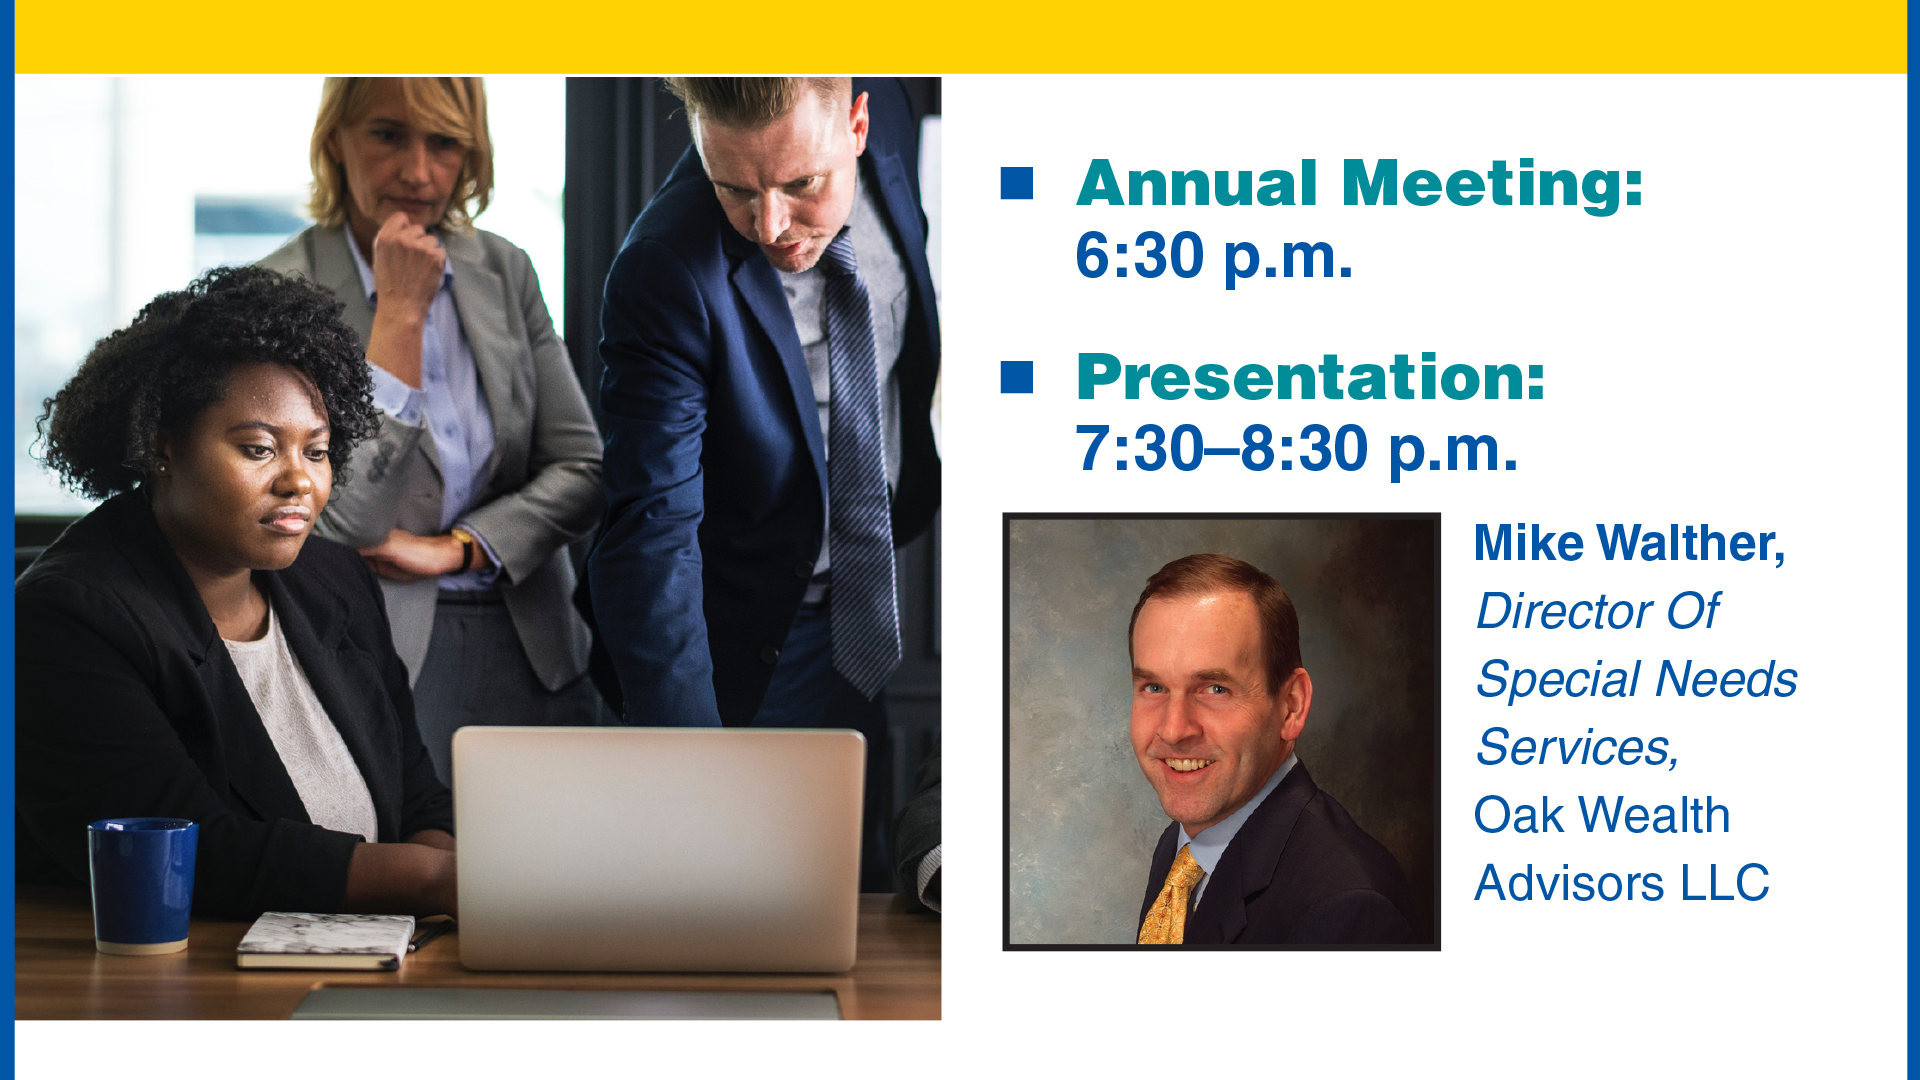 oak wealth NAMI CCNS Annual Meeting | 7 Essential Elements for Successful Special Needs Planning